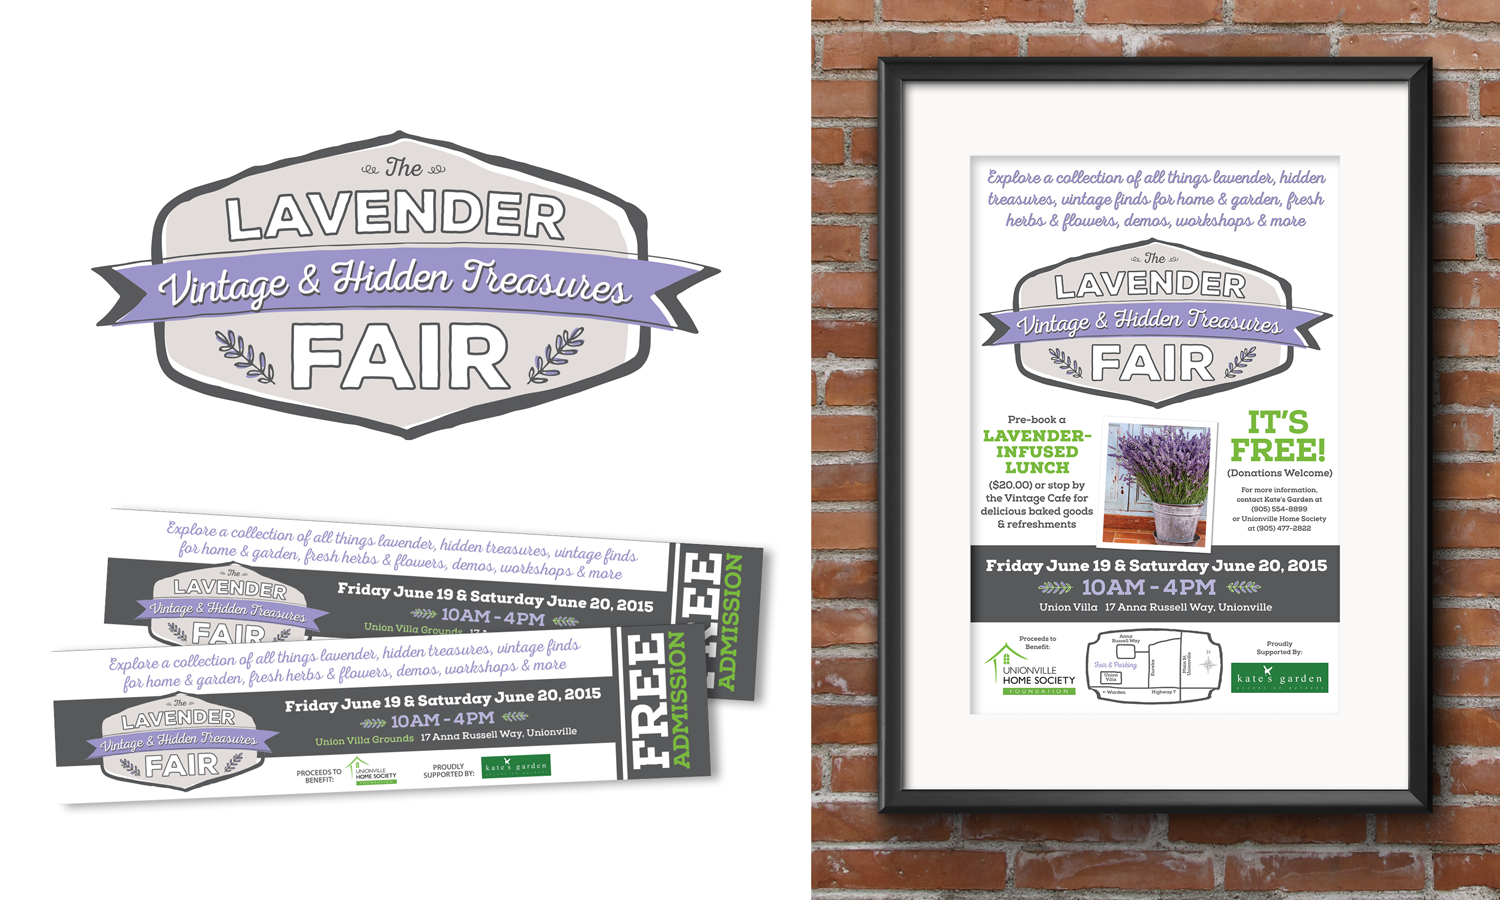 Event logo and brand design for The Lavender Fair